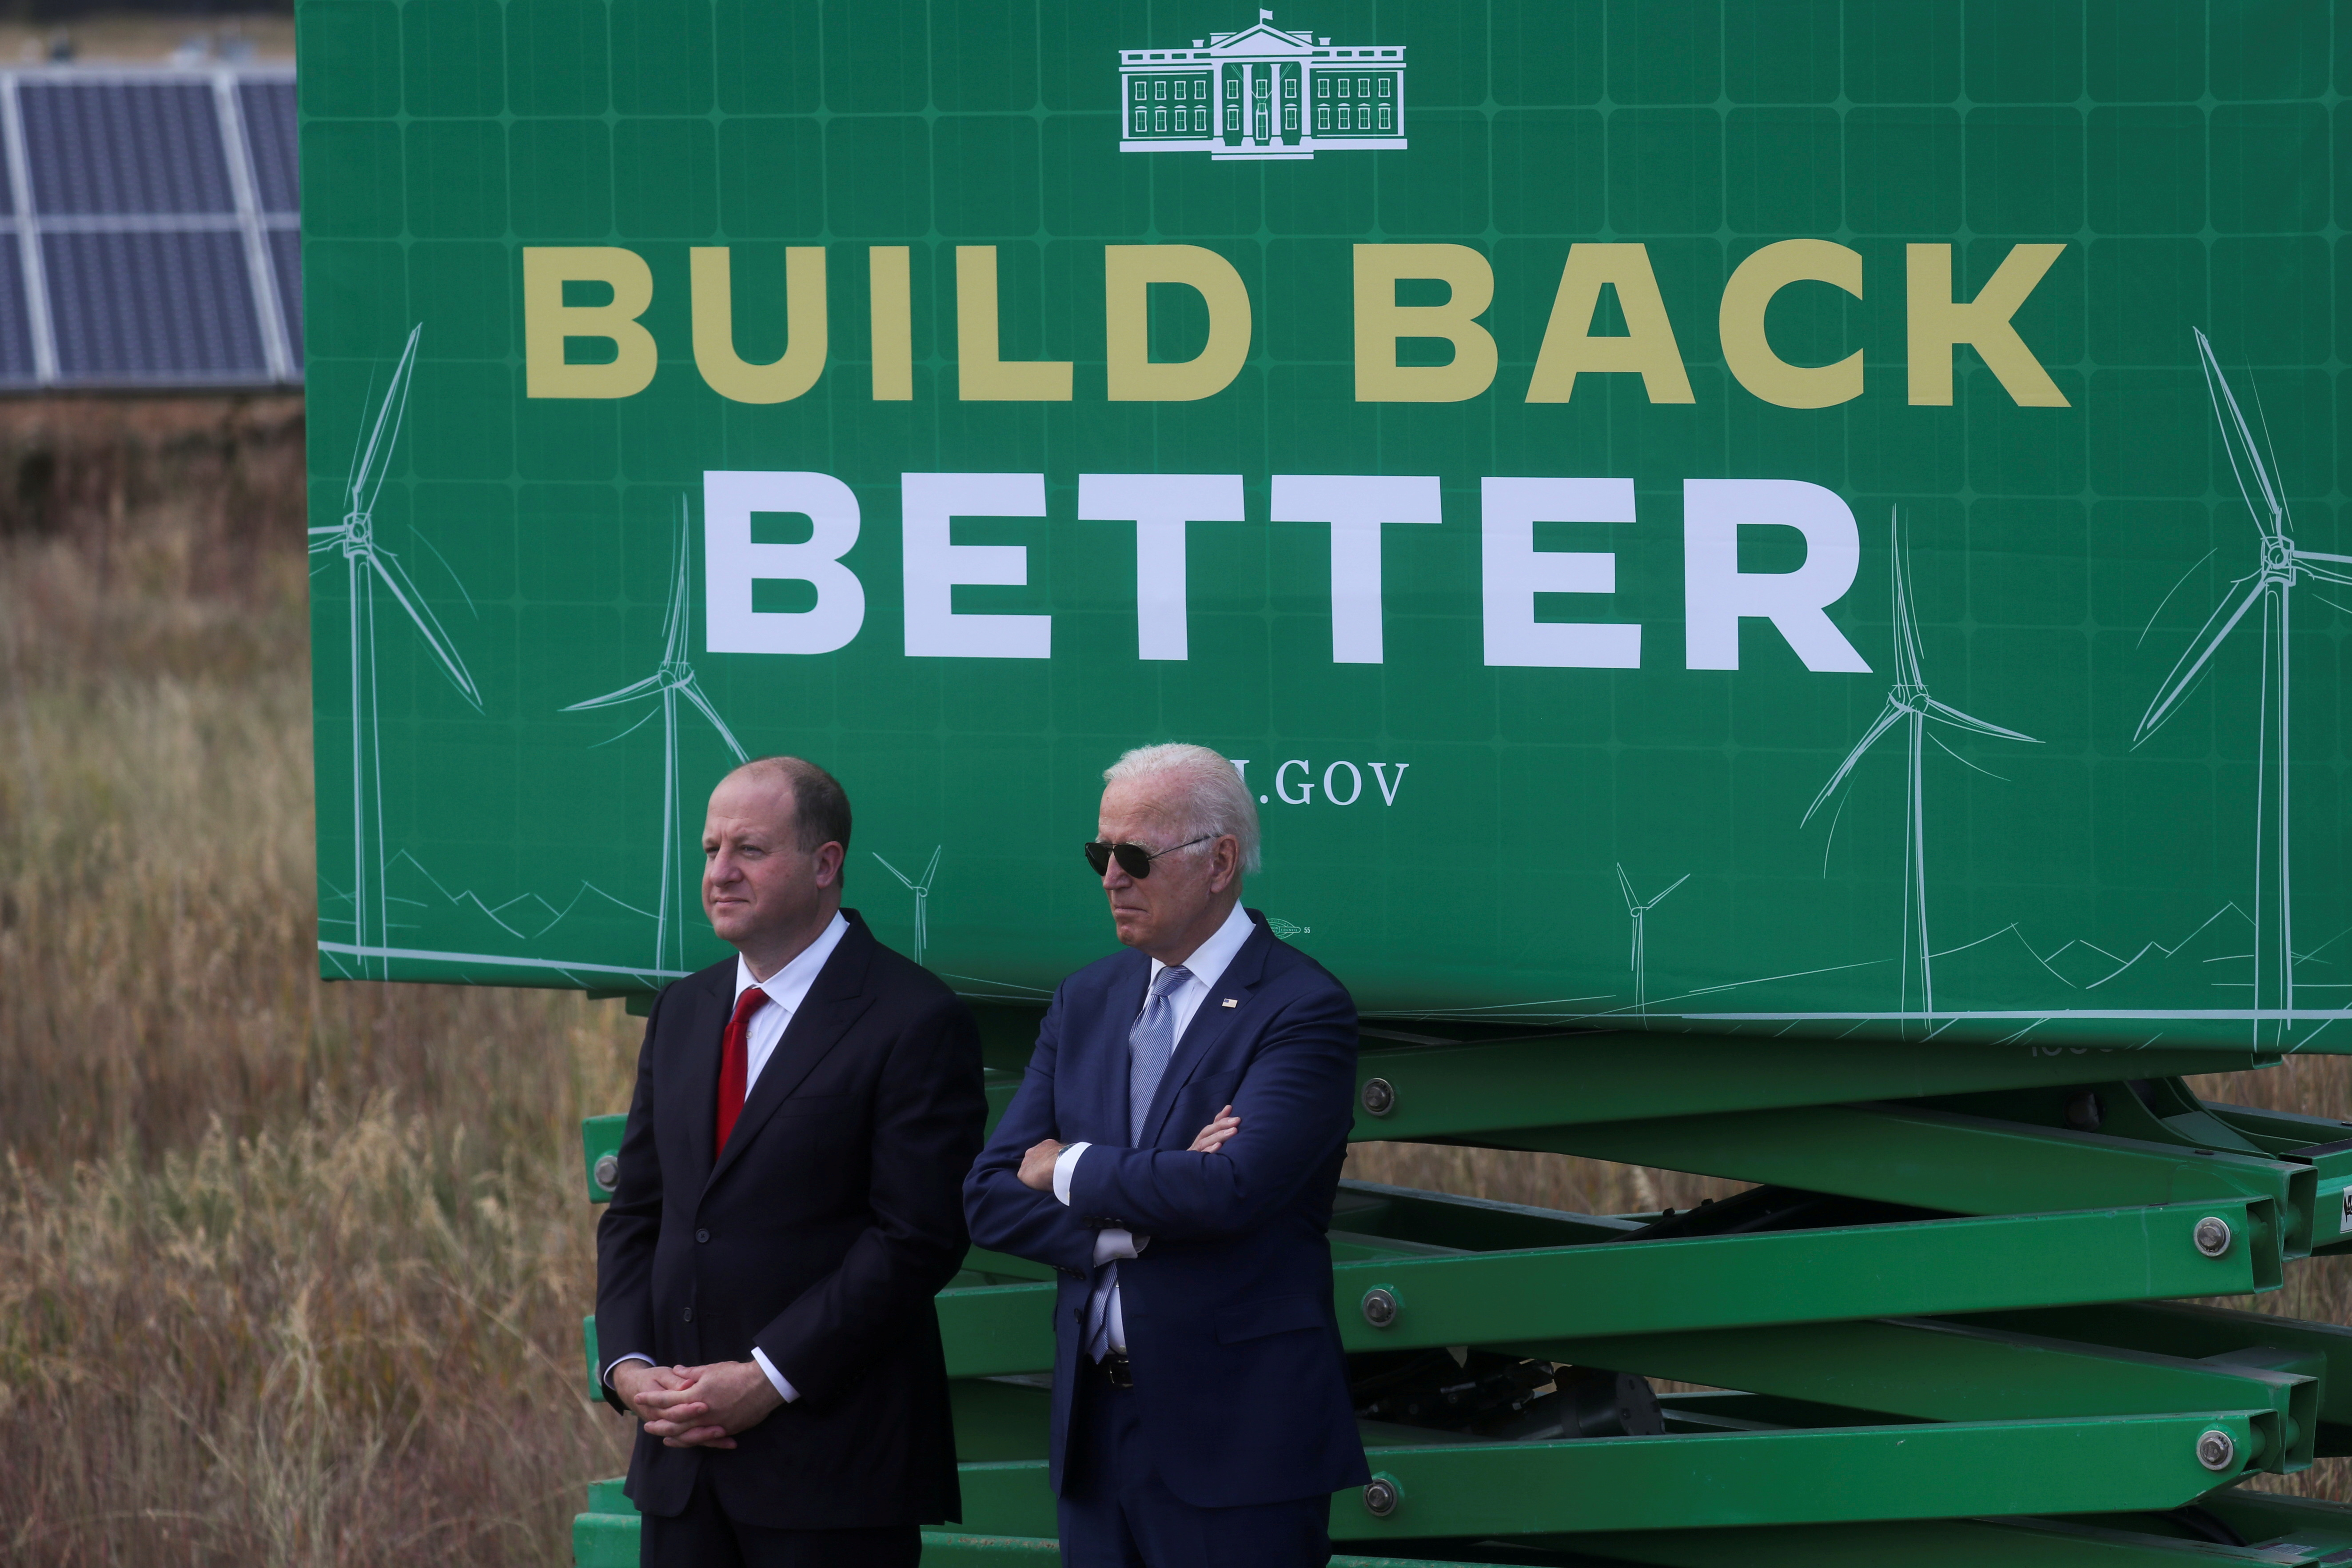 U.S. President Joe Biden stands next to Governor of Colorado Jared Polis during a visit to the Flatirons Campus Laboratories and Offices of the National Renewable Energy Laboratory (NREL), in Arvada, Colorado, U.S. September 14, 2021. REUTERS/Leah Millis